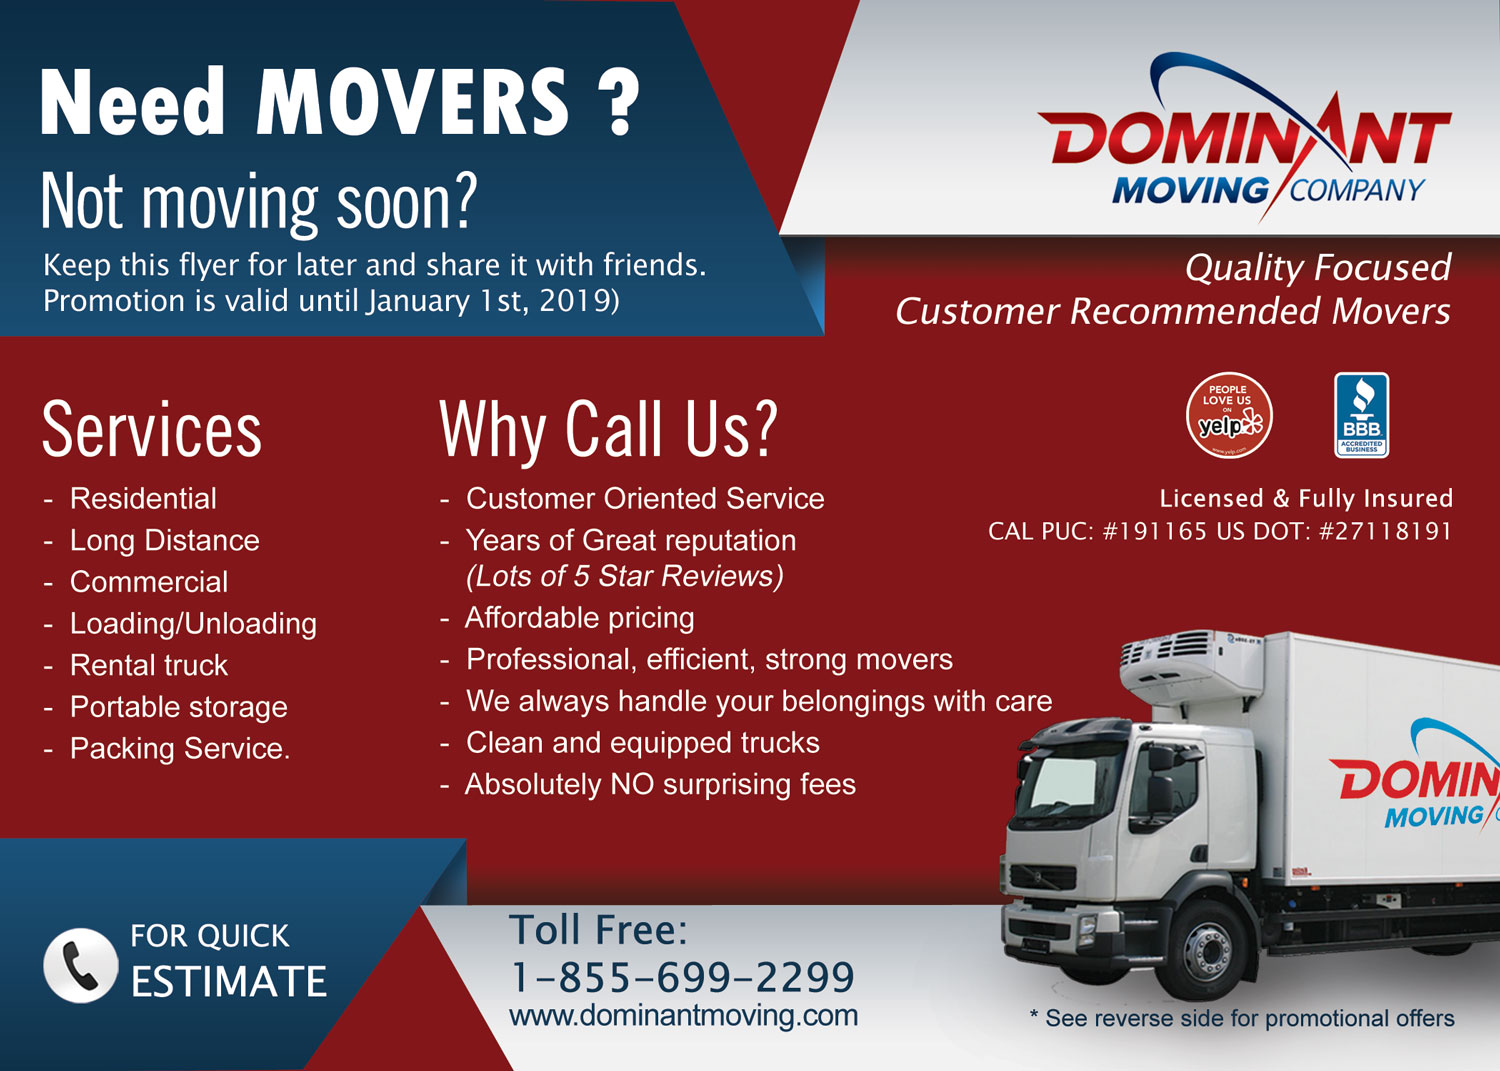 flyer design by jyotsna for dominant moving systems design 12187339